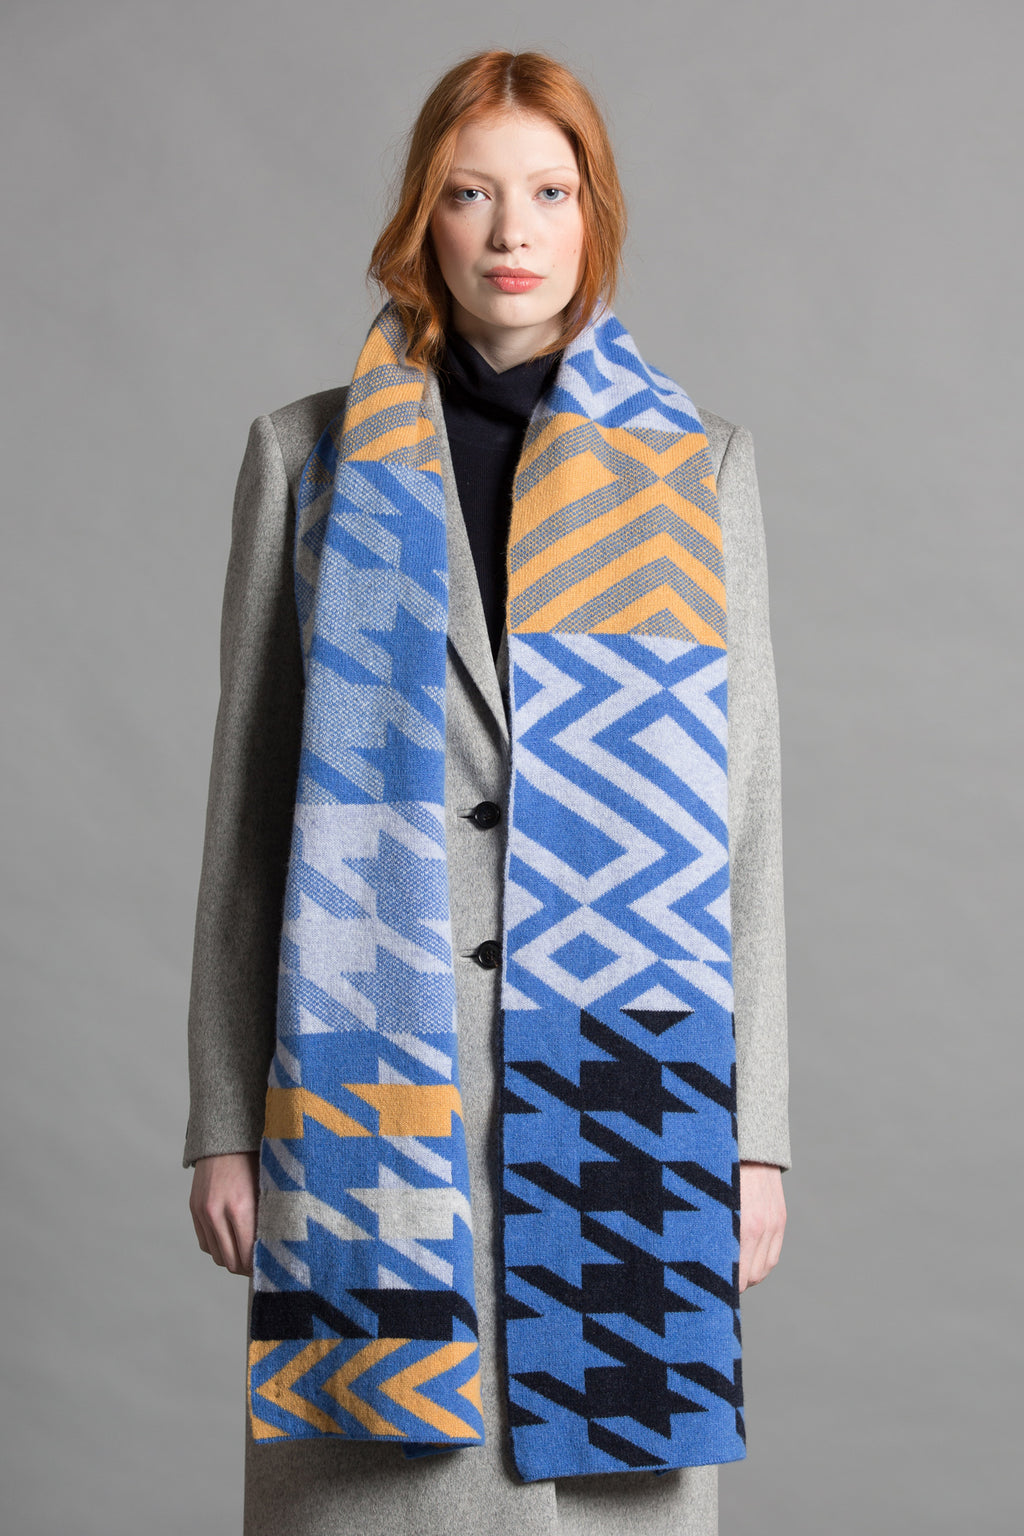 HOUNDSTOOTH BLANKET SCARF NANA MIX - GREEN THOMAS